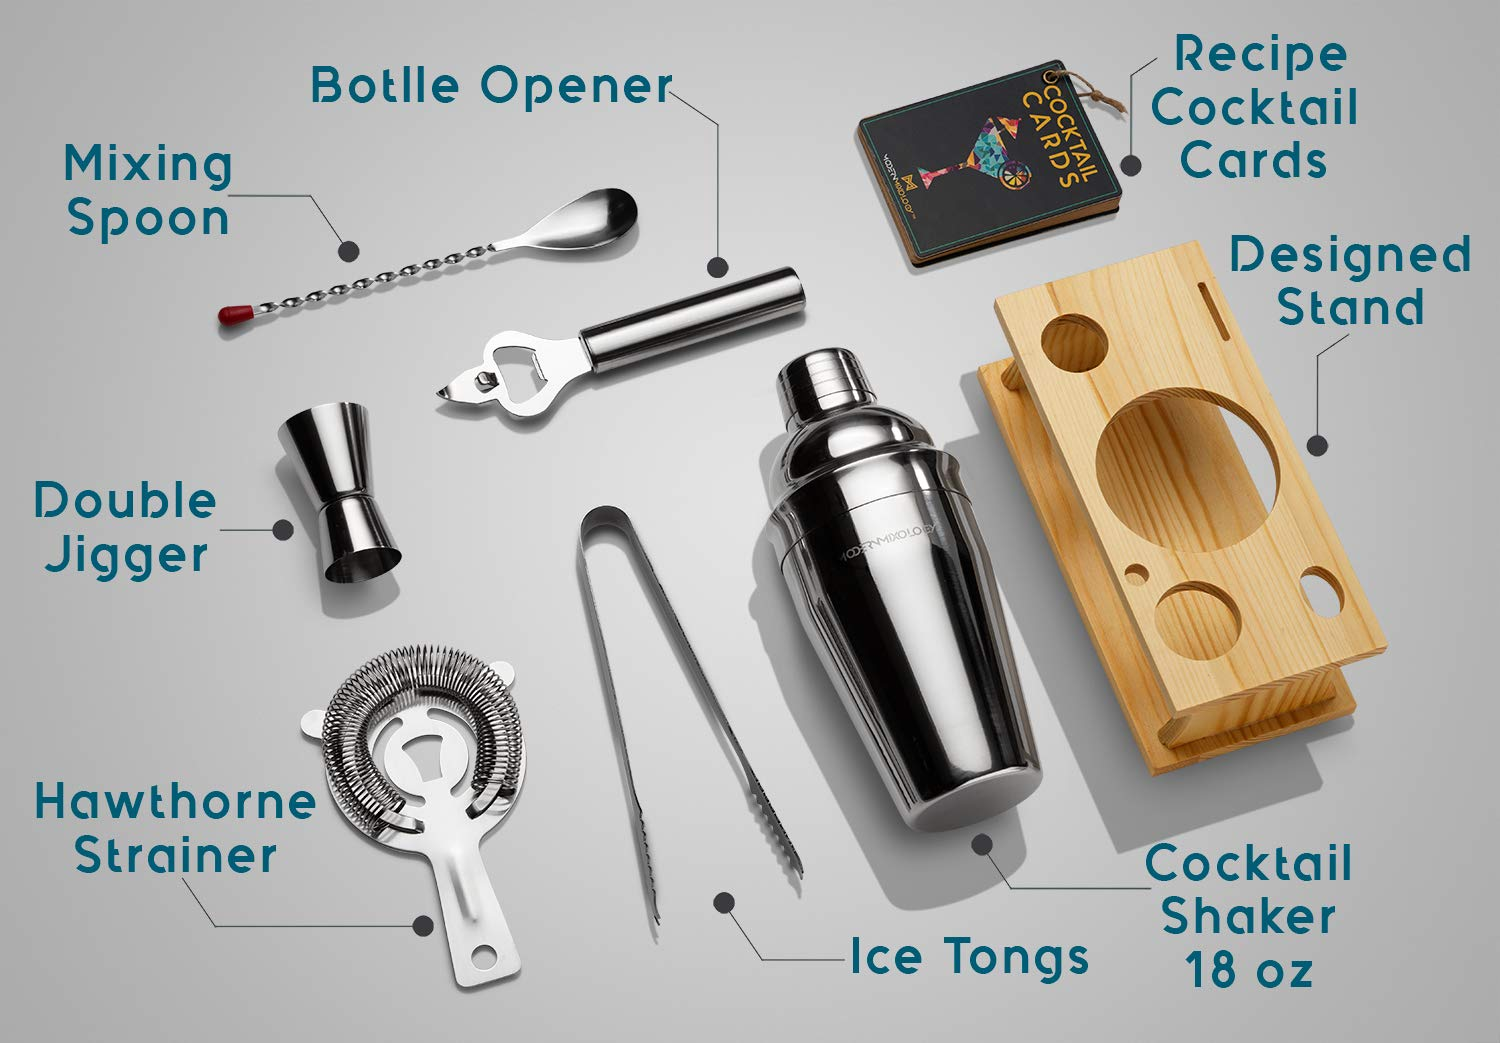 Mixology Bartender Kit with Stand | Bar Set Cocktail Shaker Set for Drink Mixing - Bar Tools: Martini Shaker, Jigger, Strainer, Bar Mixer Spoon, Tongs, Bottle Opener | Best Bartender Kit for Beginners by Modern Mixology (Image #6)